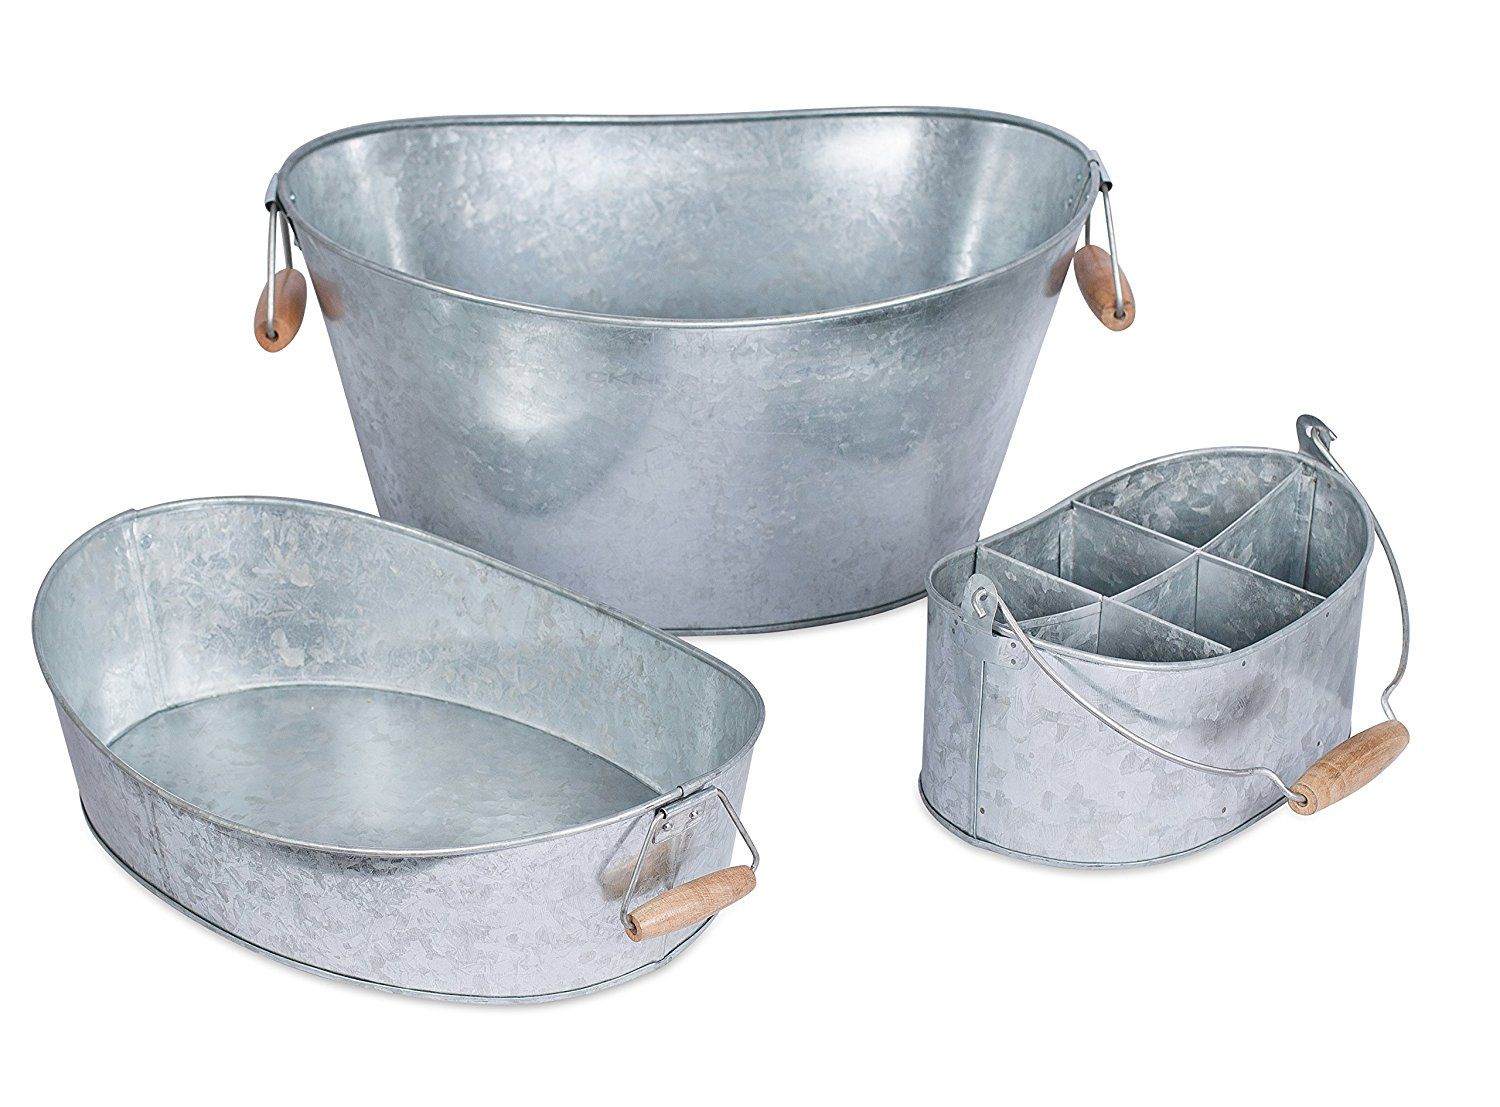 Amazon.com: BirdRock Home Galvanized Beverage Tub, Caddy and Tray ...